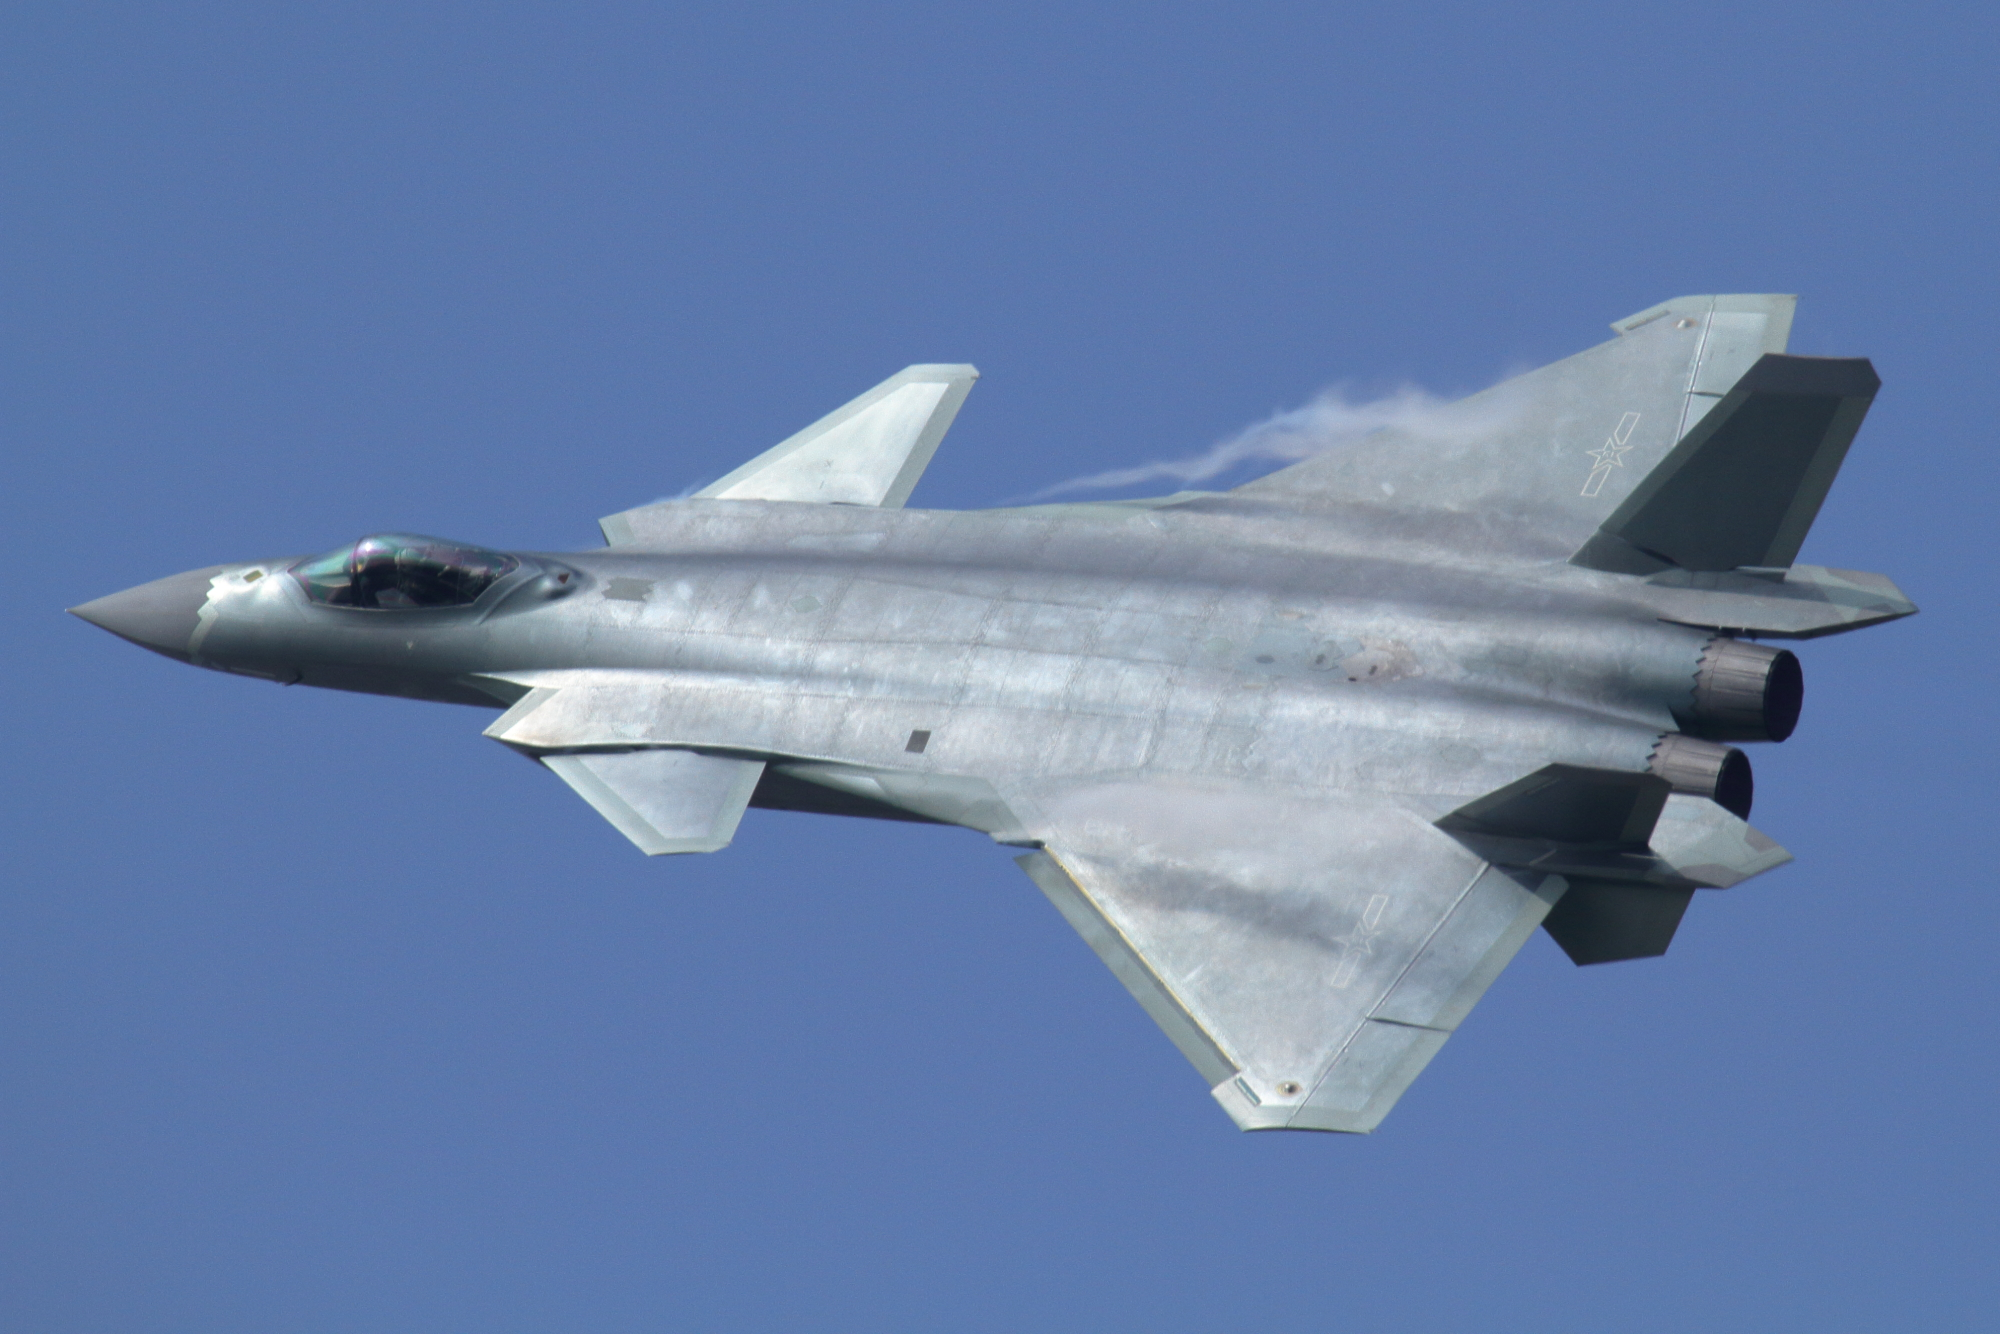 J-20_at_Airshow_China_2016.jpg (2000×1334)